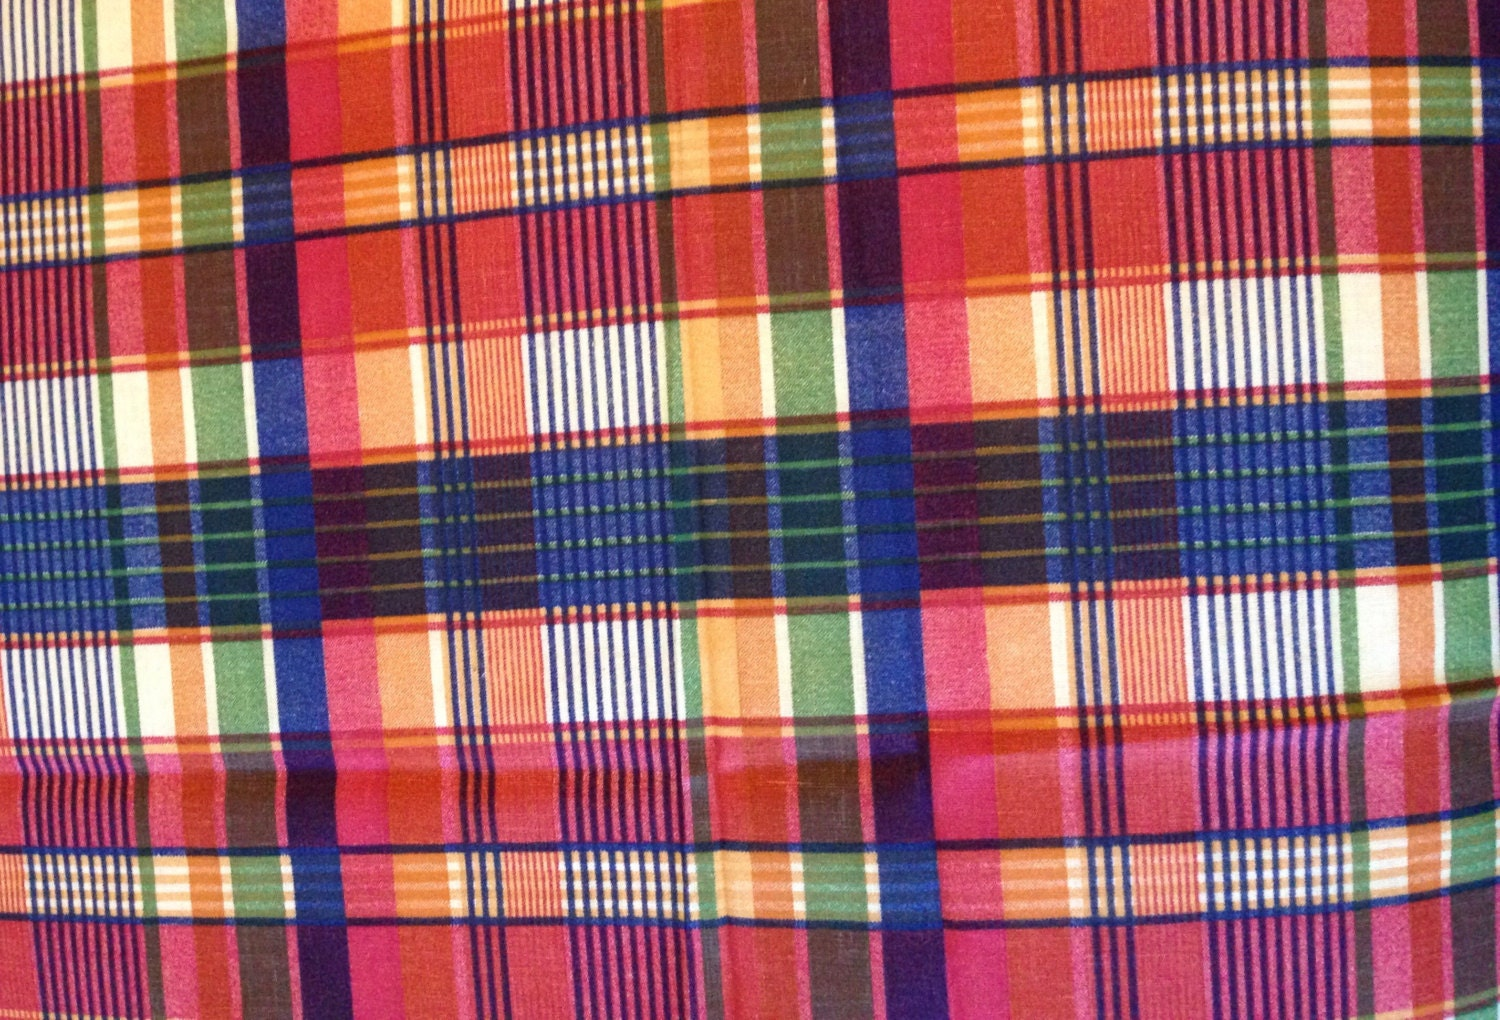 vintage printed plaid fabric orange and blue fabric by the yard from theresamarierose on. Black Bedroom Furniture Sets. Home Design Ideas